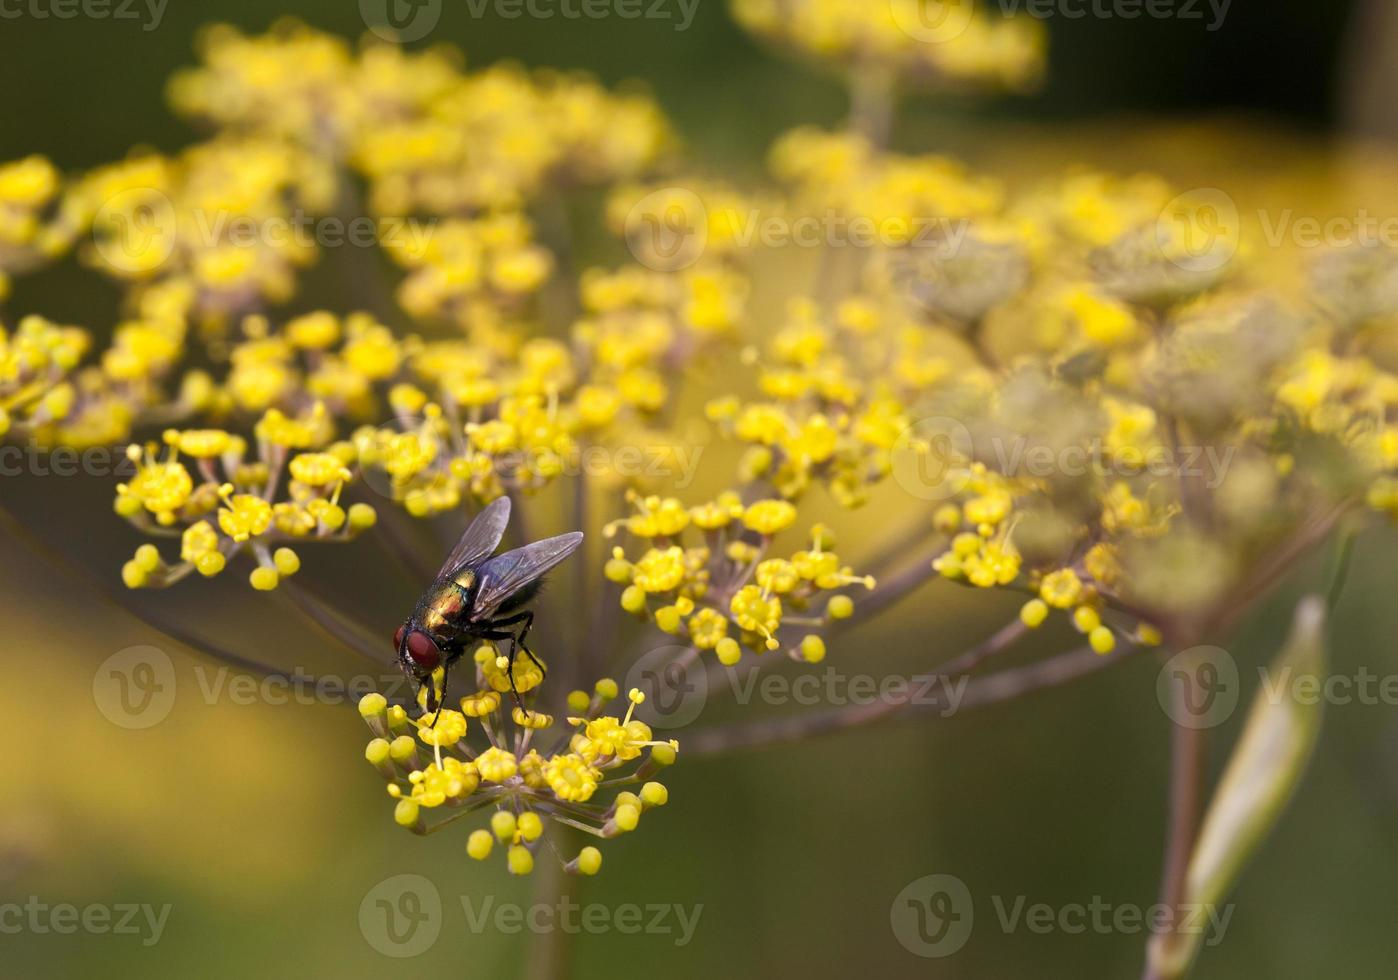 House fly, Musca domestica photo